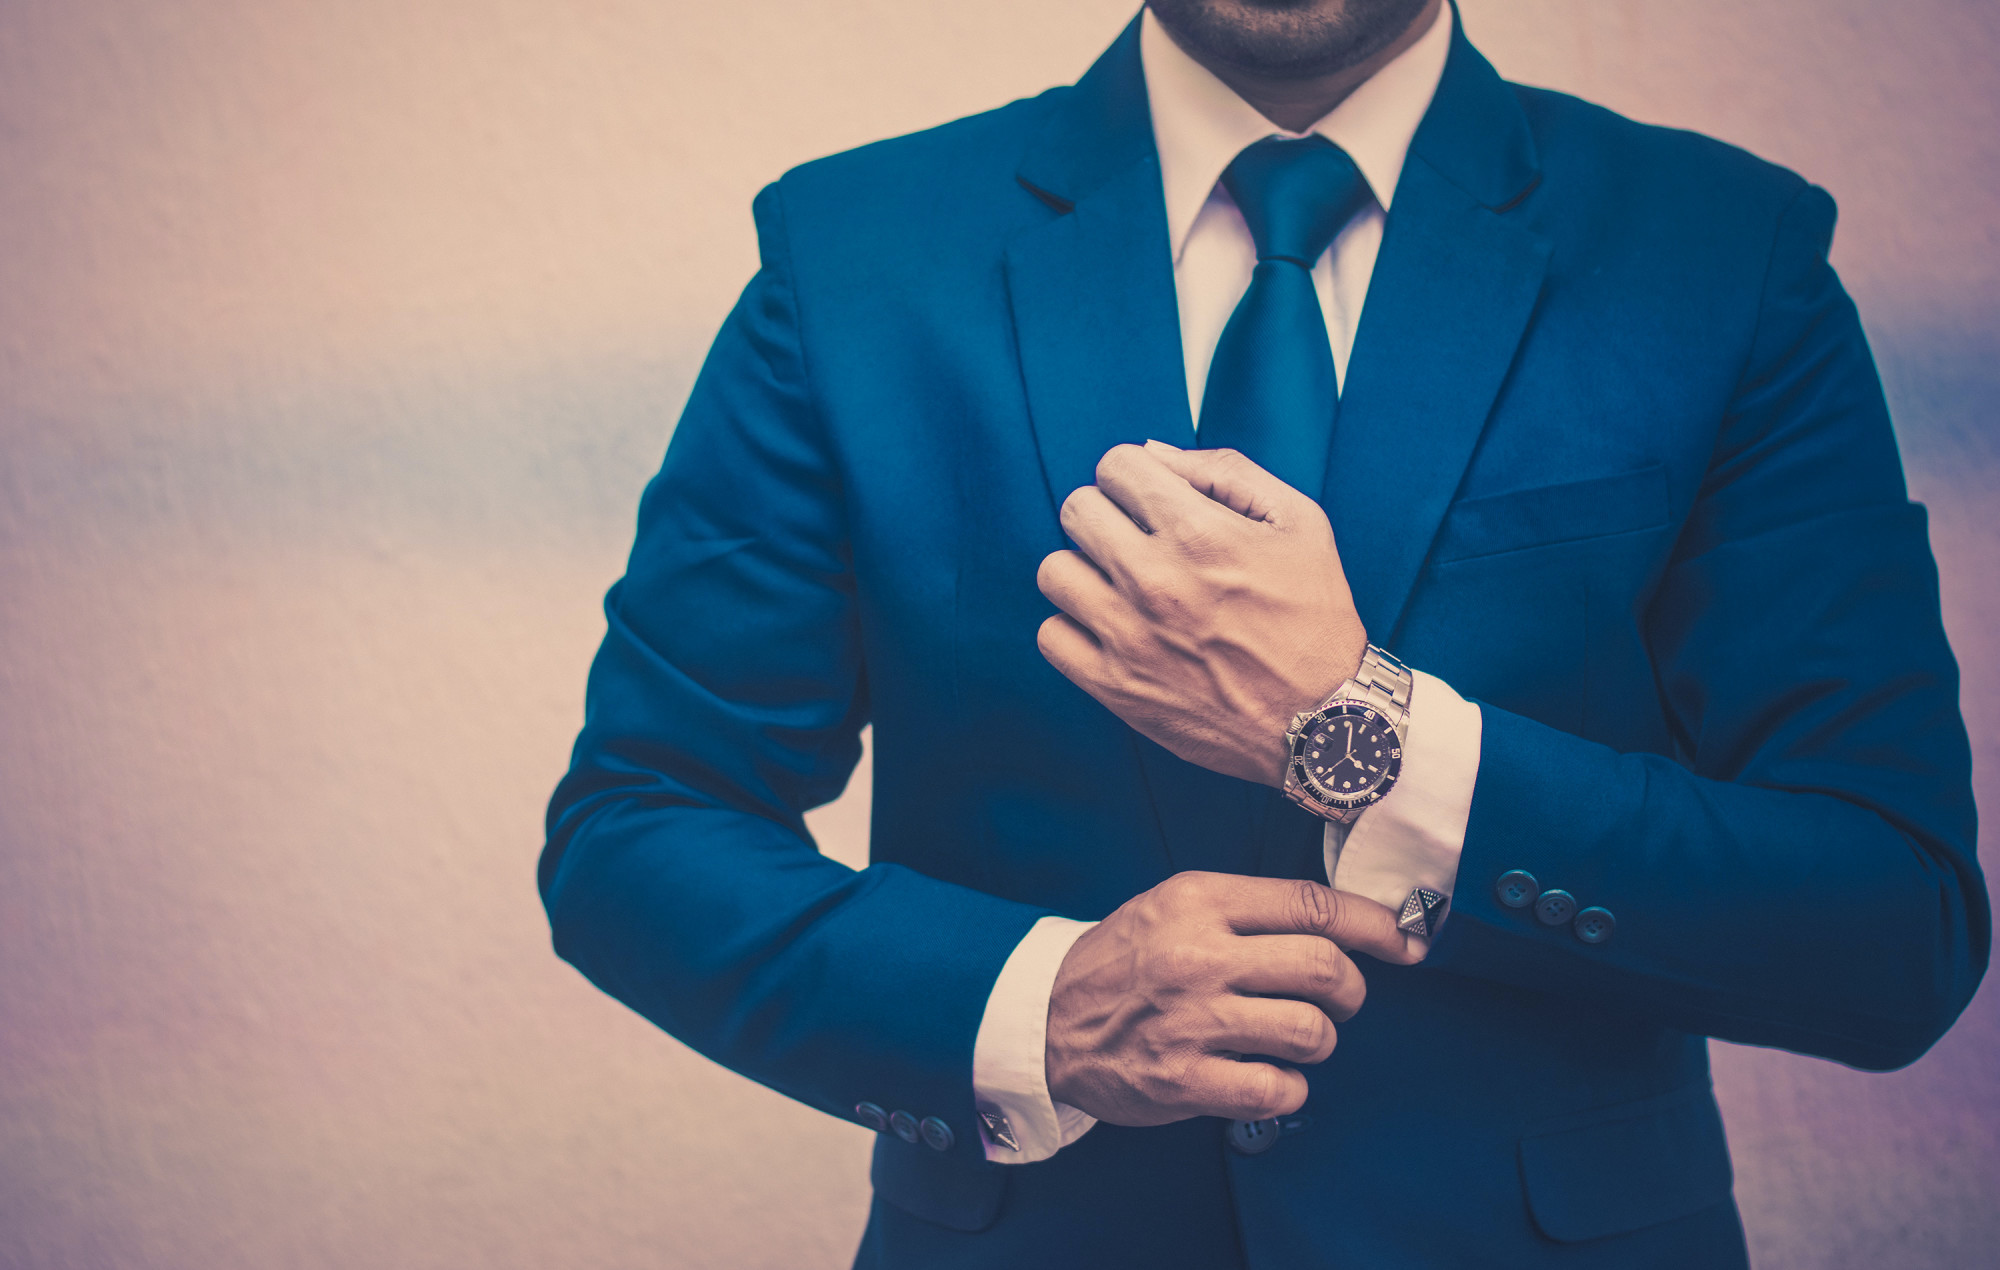 5 Secrets of People Who Look Effortlessly Stylish Every Day